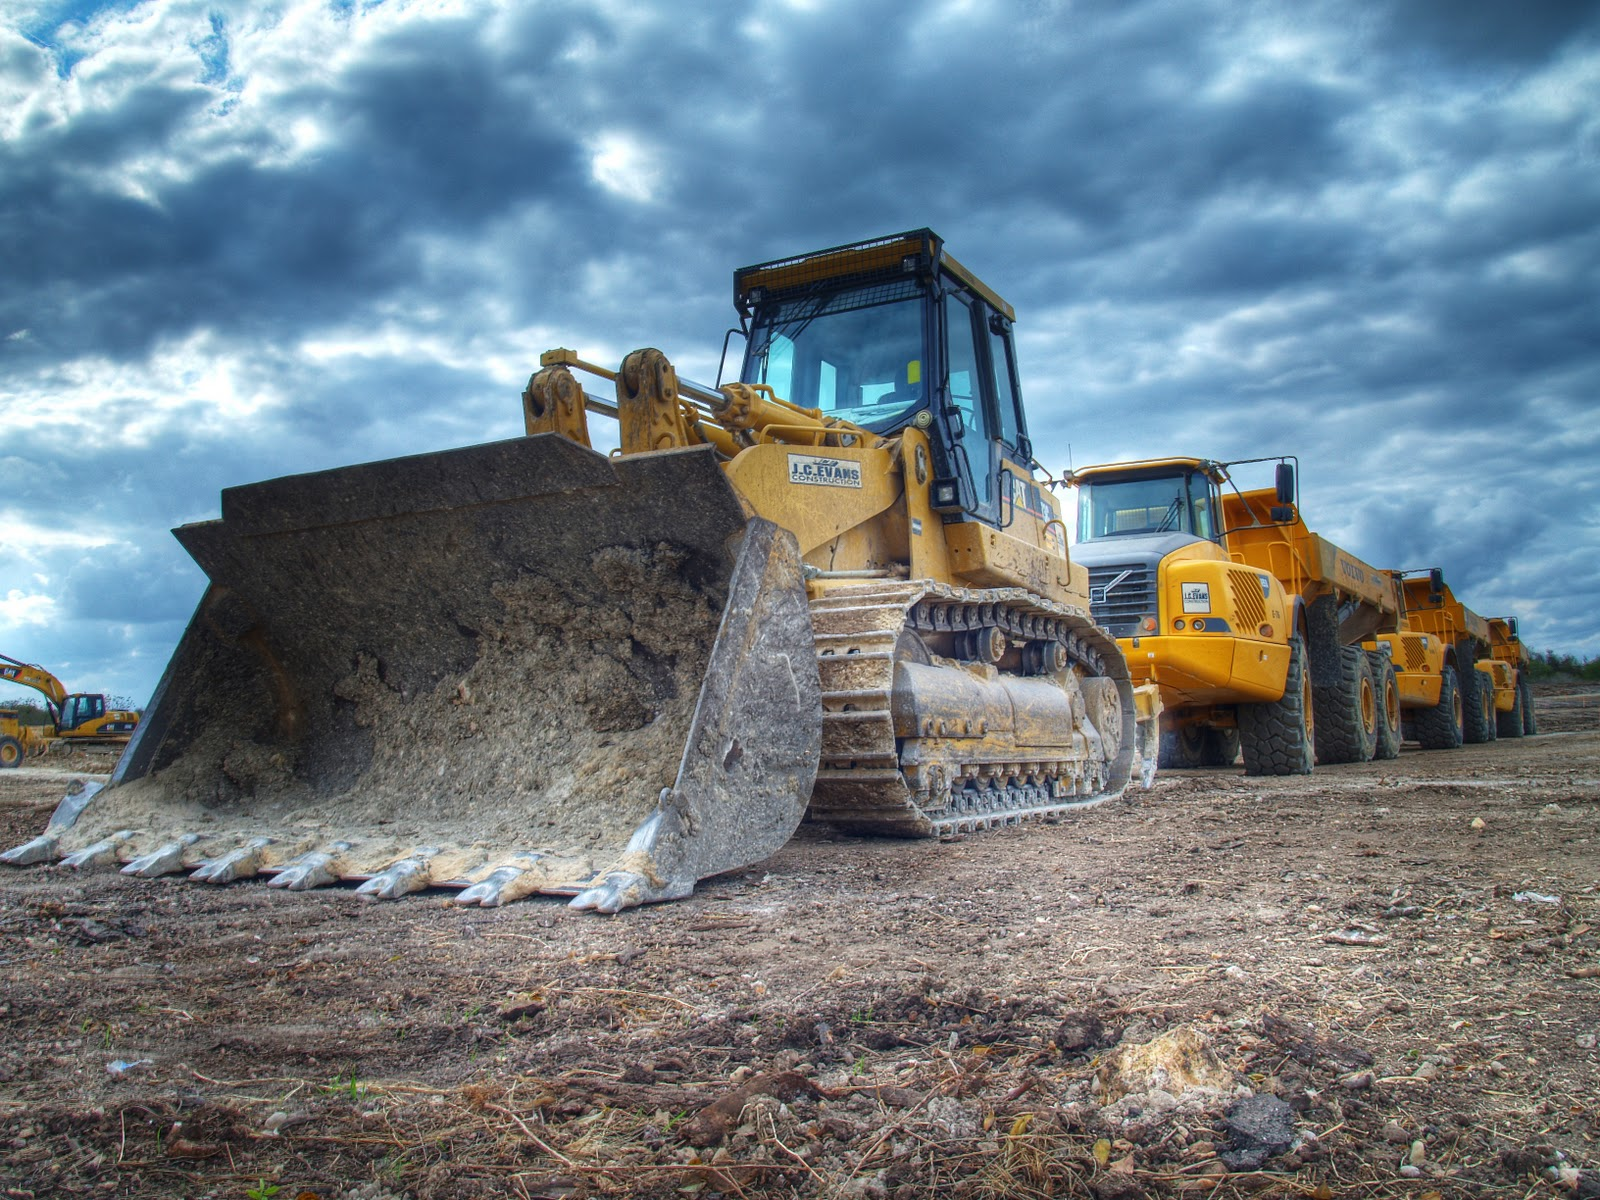 Construction Equipment Wallpaper Wallpapersafari